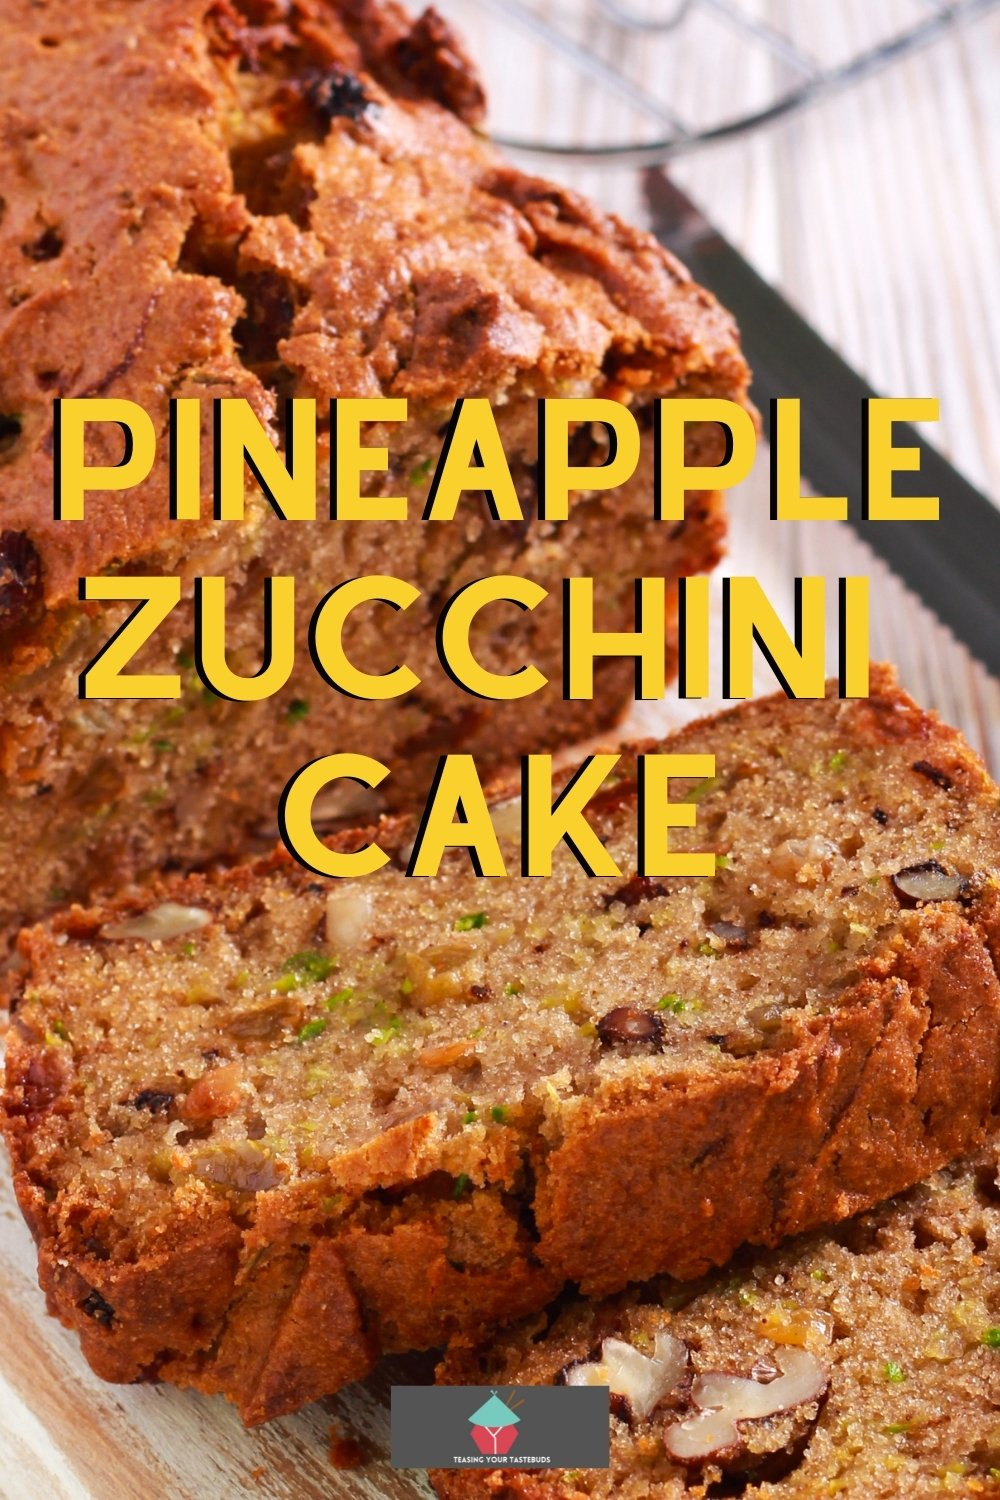 Pineapple Zucchini Cake, a lovely soft cake with shredded zucchini, pineapple, nuts, raisins and spices. Smells fabulous when it's baking! Easy recipe